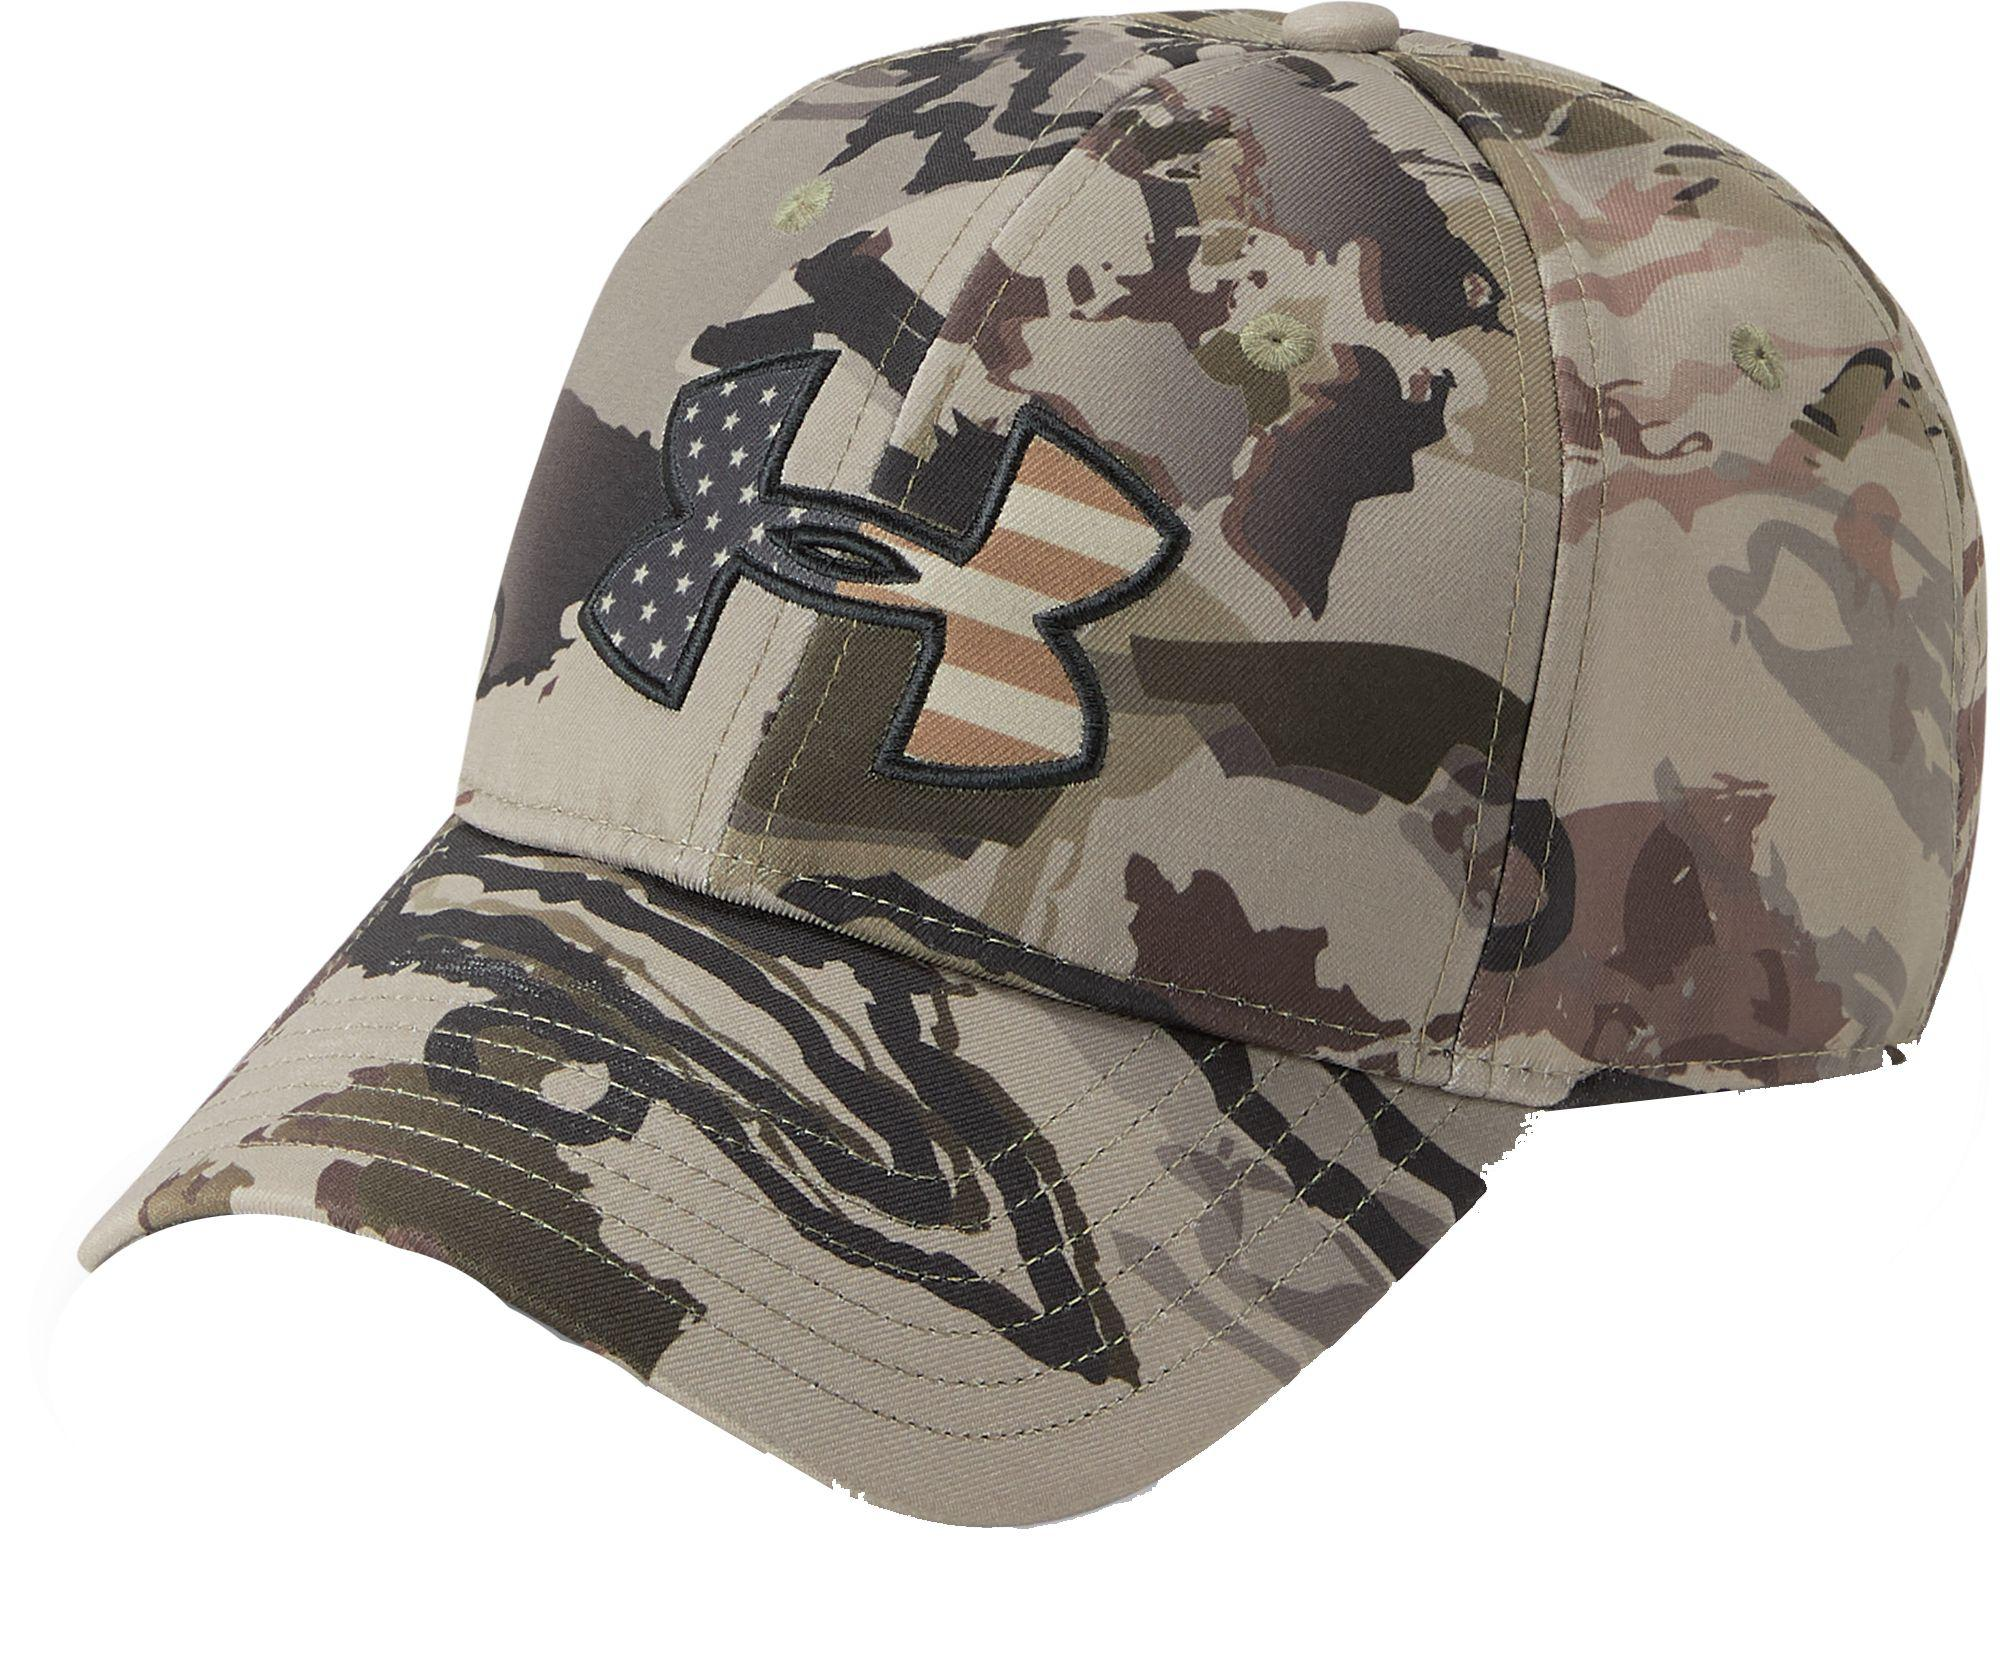 low priced 2e7ad 885a5 ... coupon code under armour. mens youth camo hat 2.0 d0e64 8ceeb